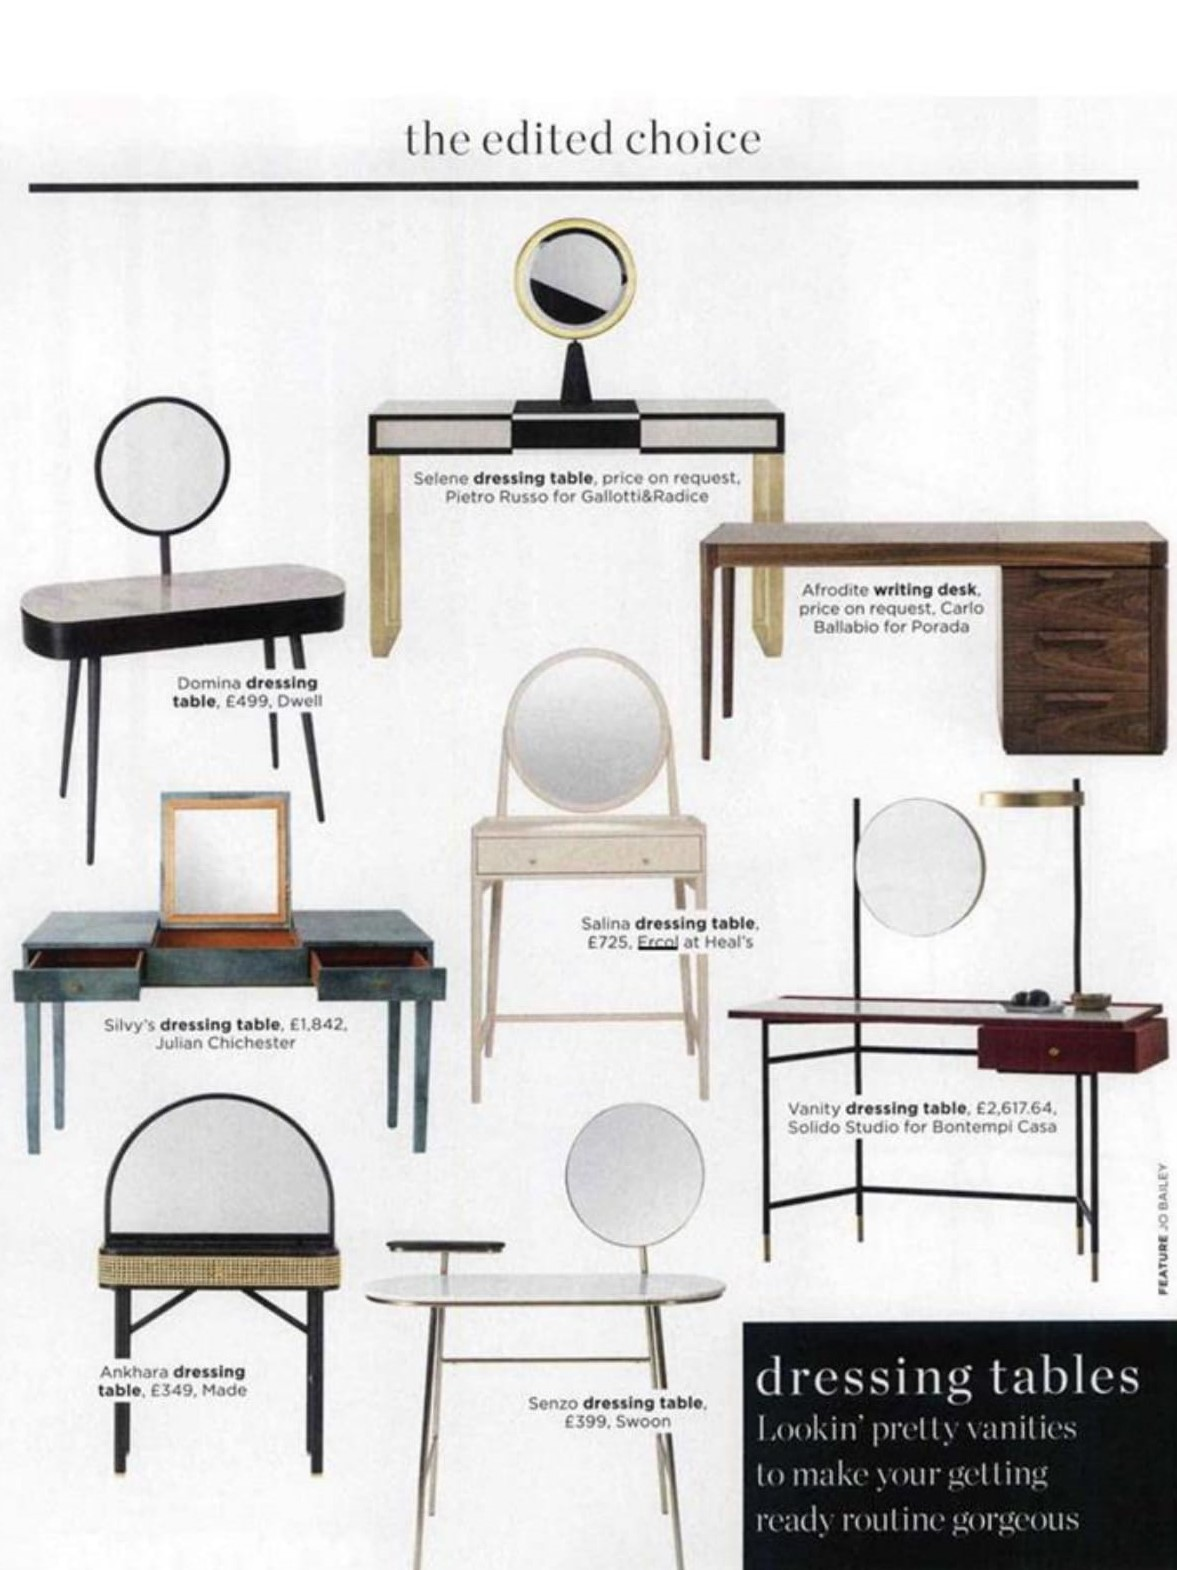 Beautify your getting ready routine with ercol's Salina dressing table, says Living Etc